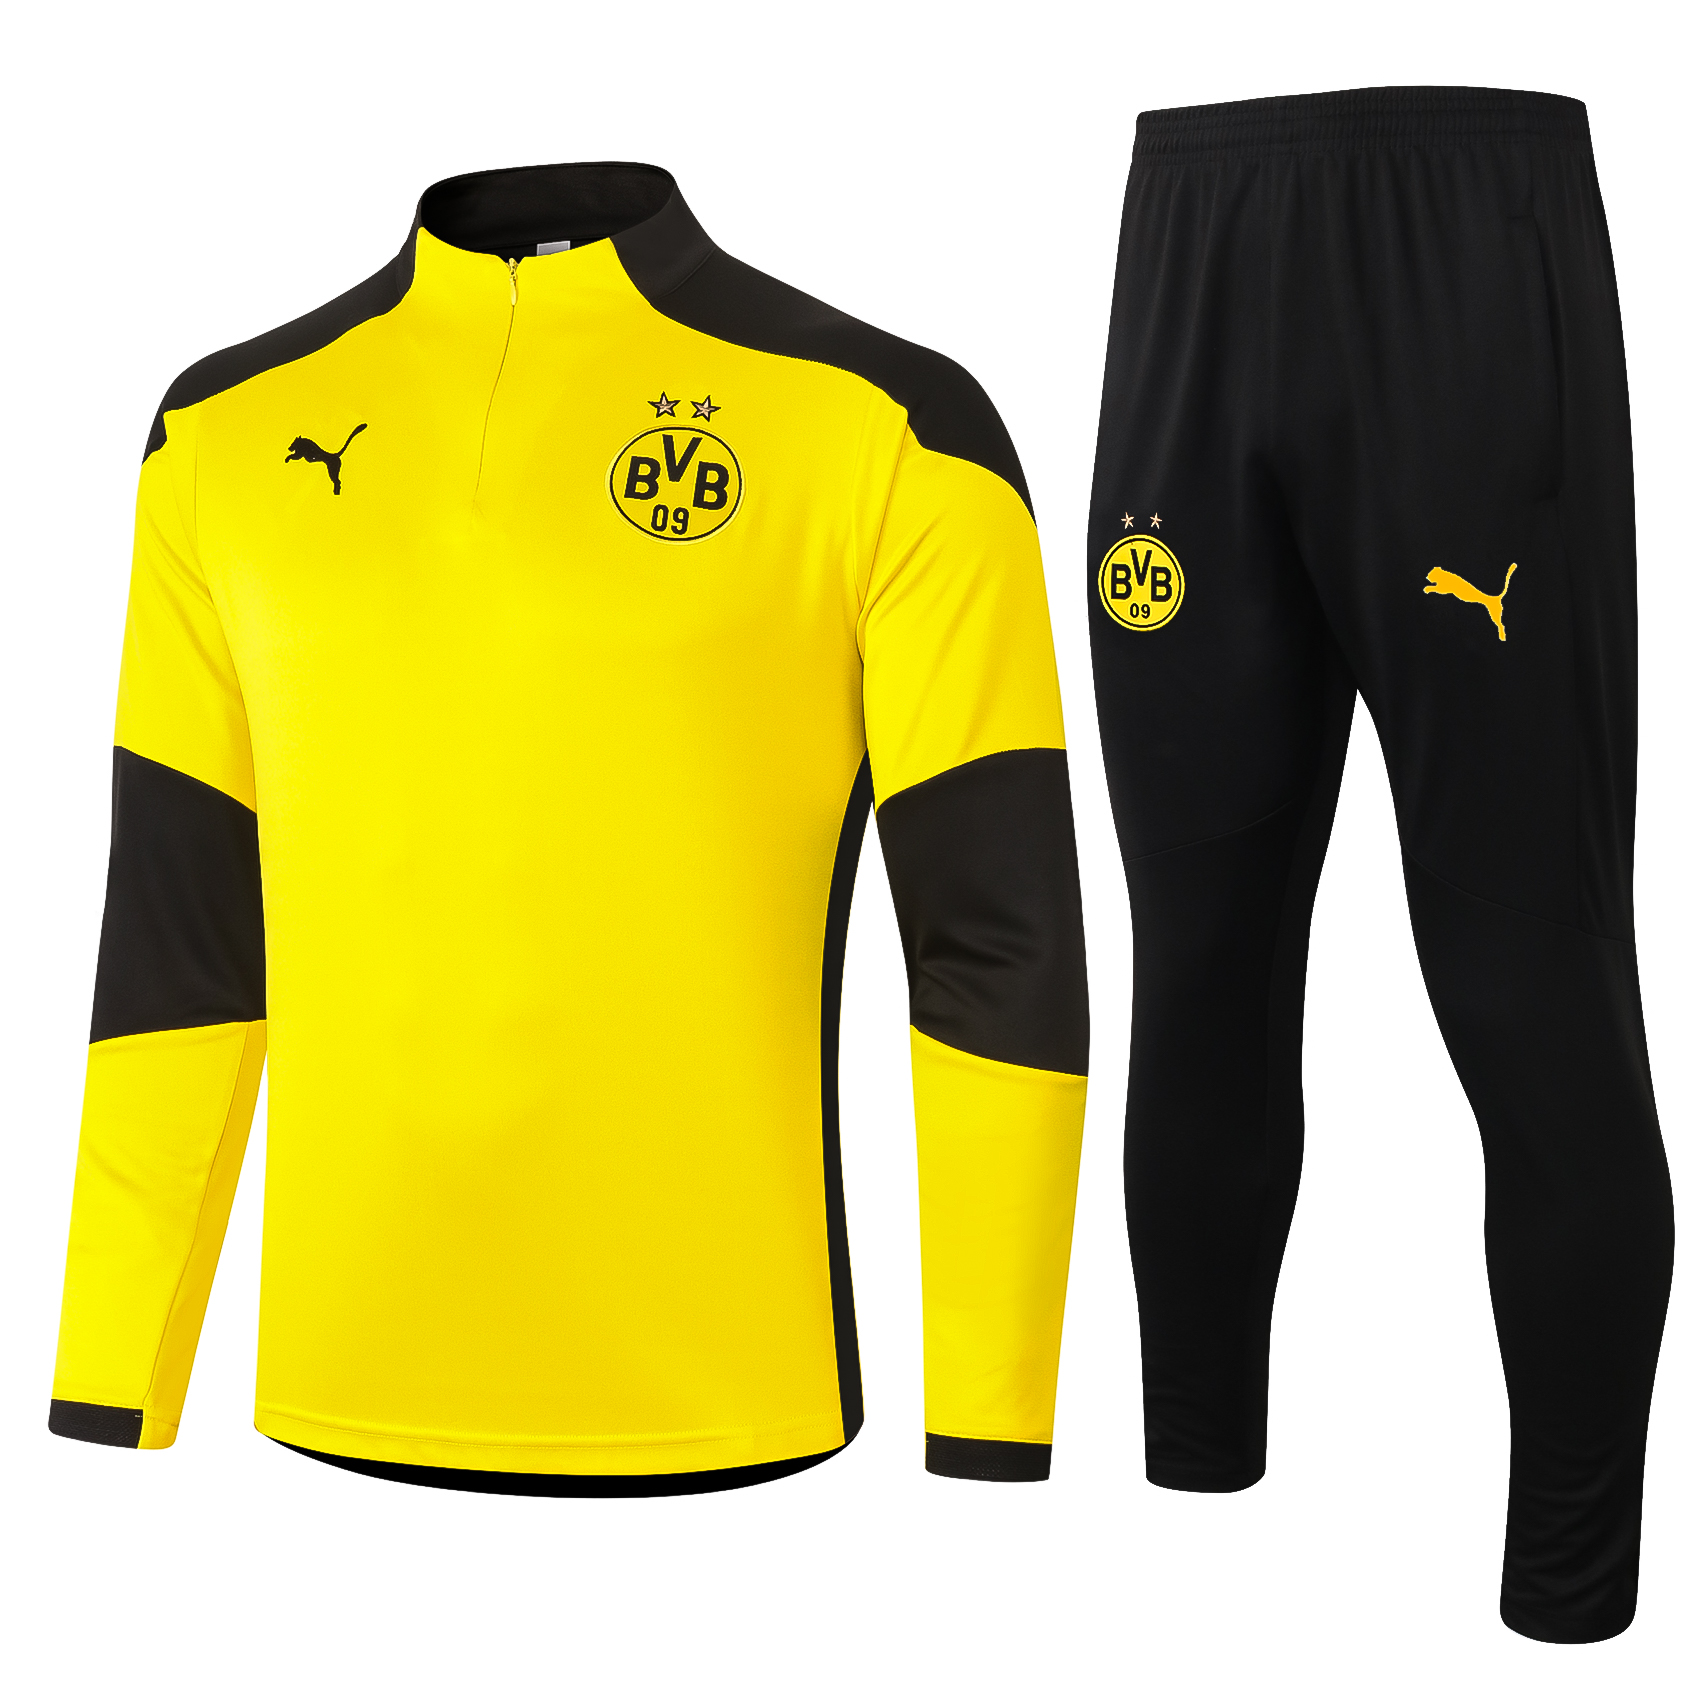 20-21-dortmund-yellow-sweater-set-442.jpg